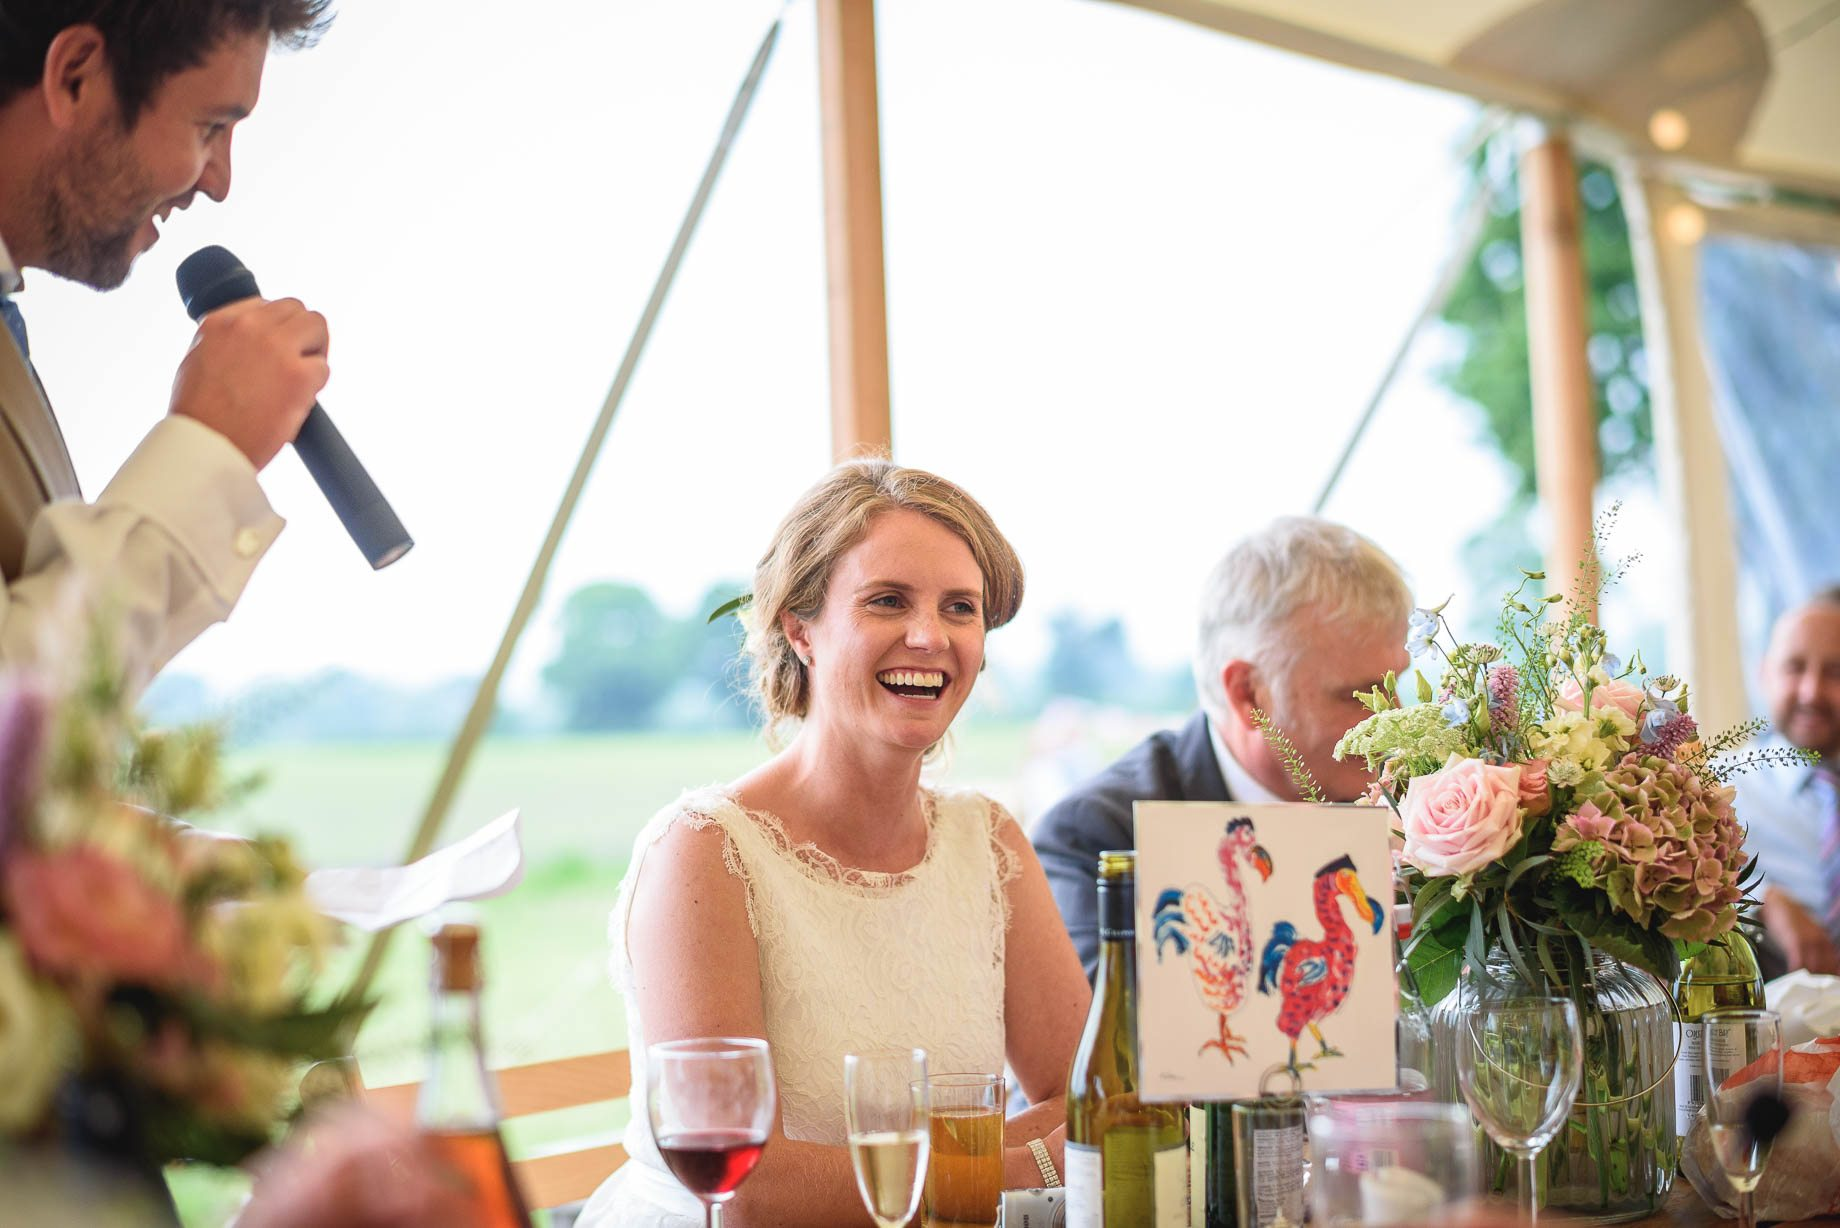 Wiltshire wedding photography by Guy Collier - Lucie and Matt (152 of 198)